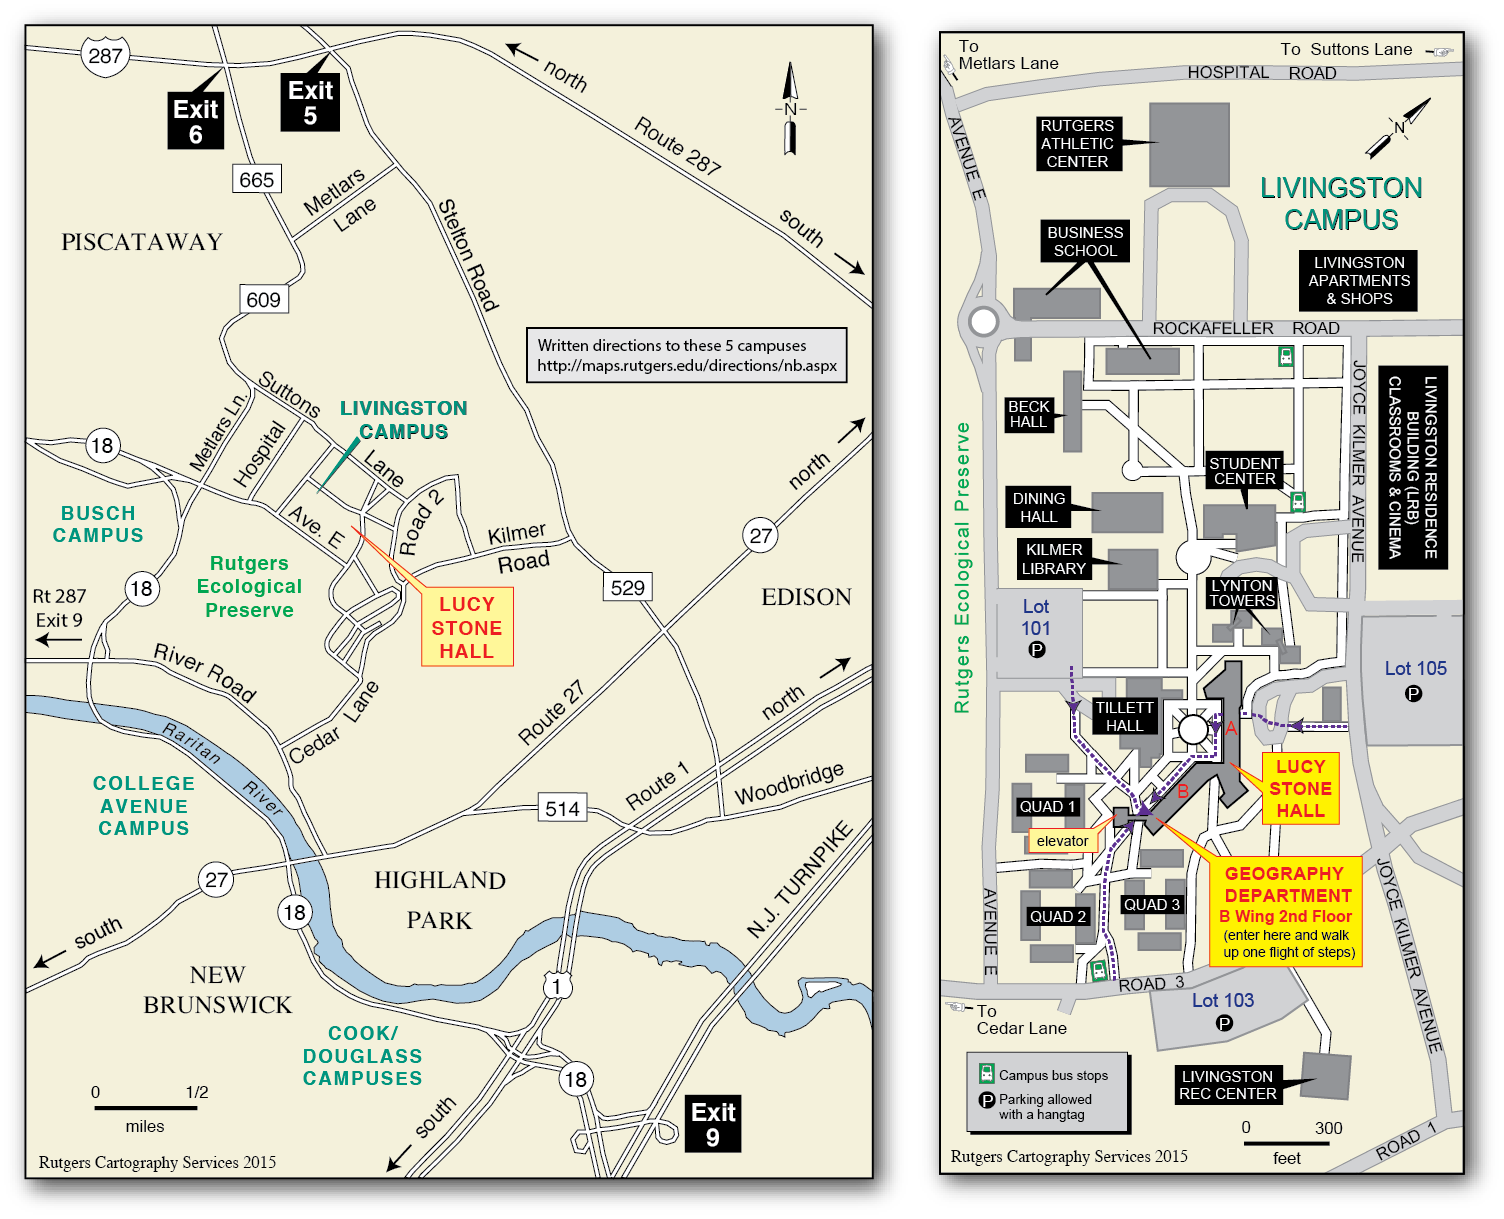 livingston campus and vicinity maps